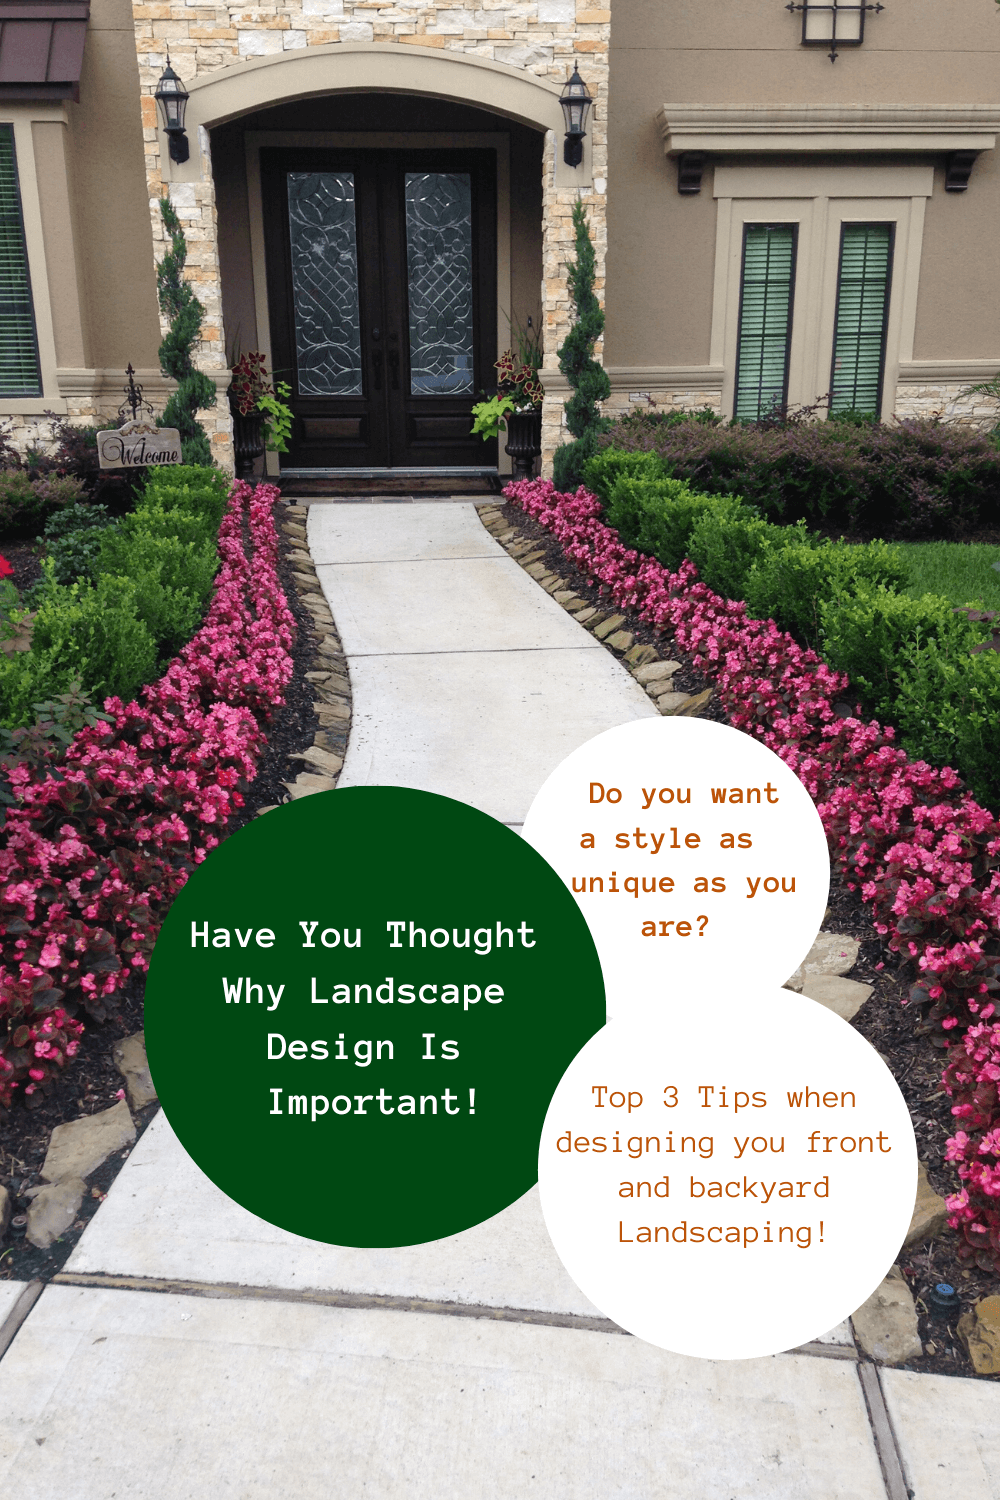 houston landscaping companies 77042